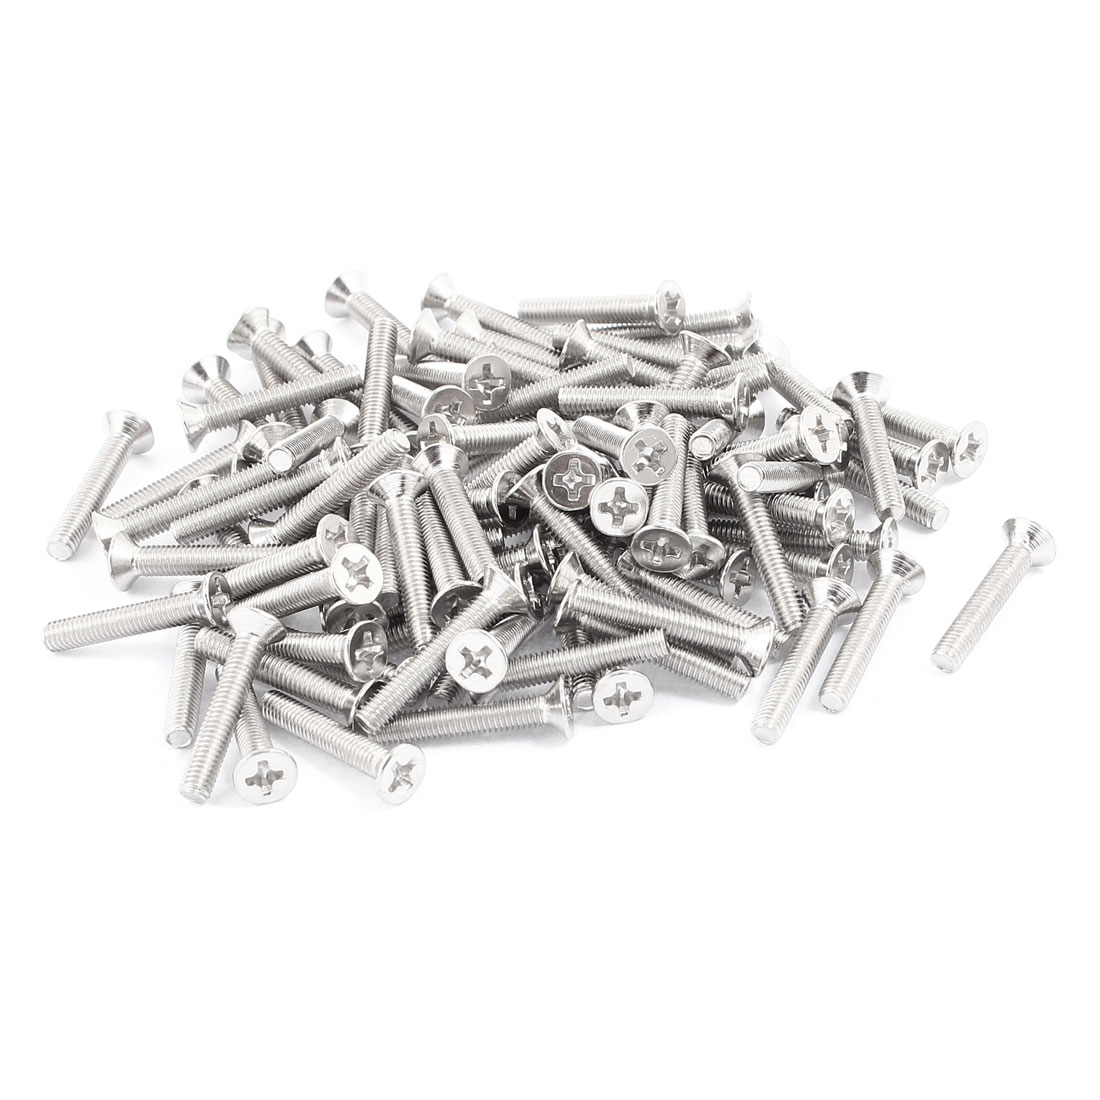 100pcs M3x18mm Stainless Steel Countersunk Flat Head Phillips Machine Screws Bolts